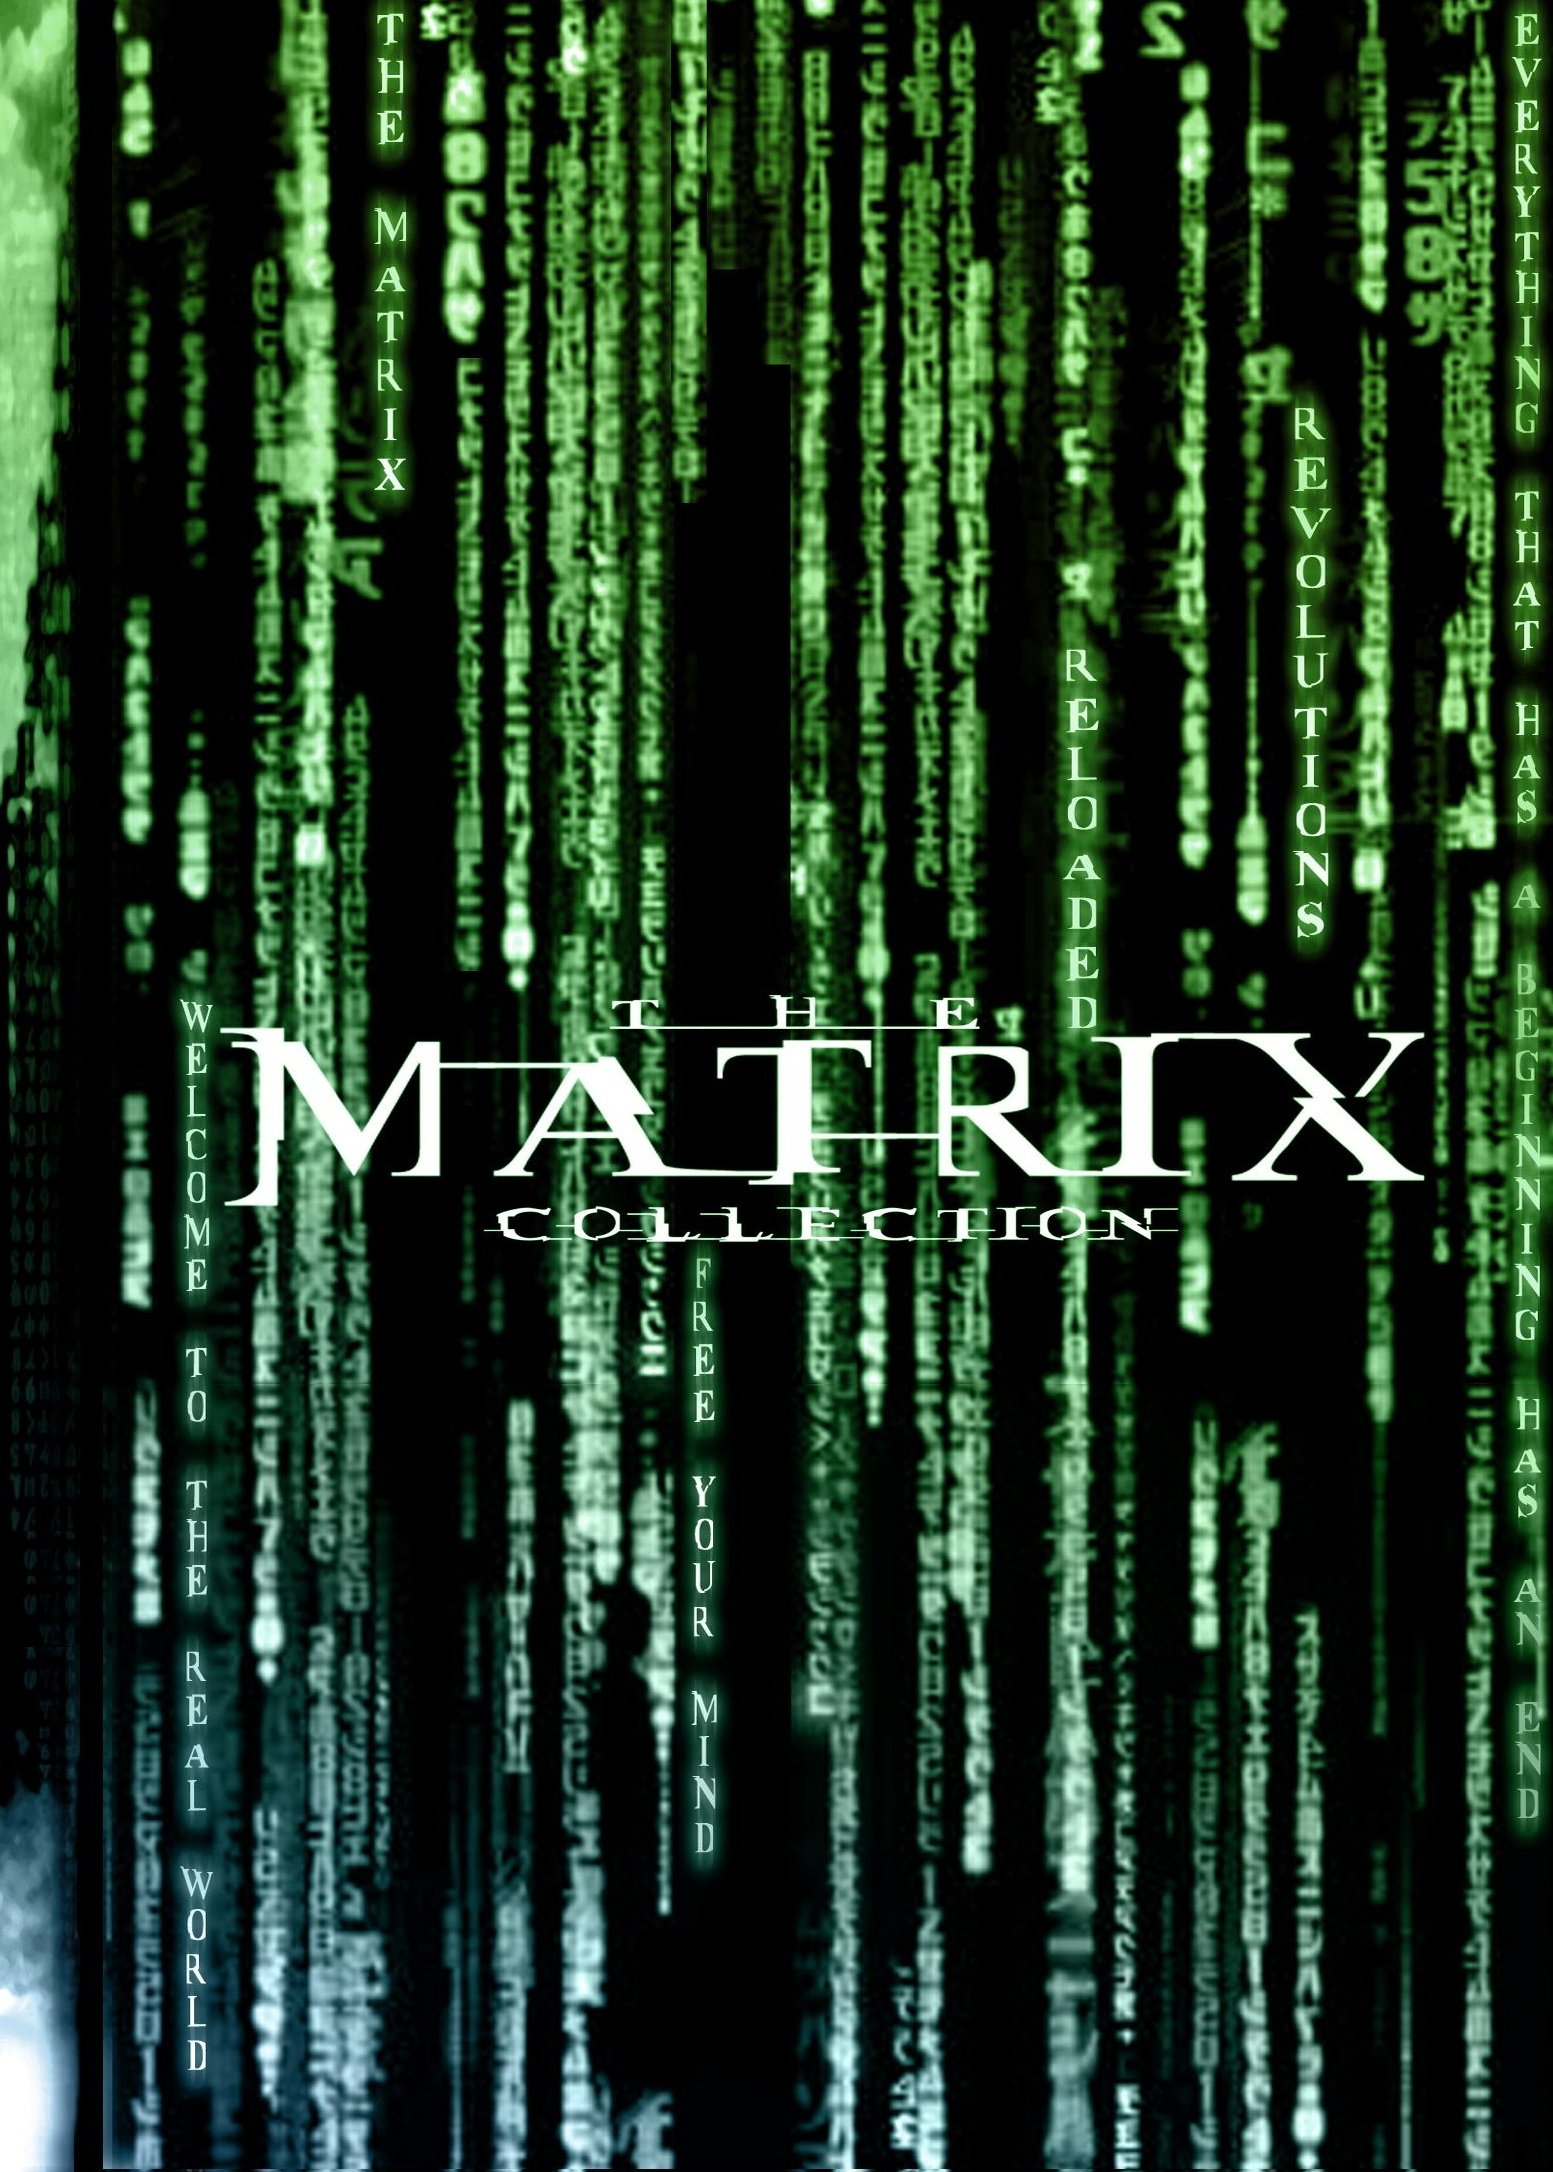 Matrix, The (1999) poster - FreeMoviePosters.net